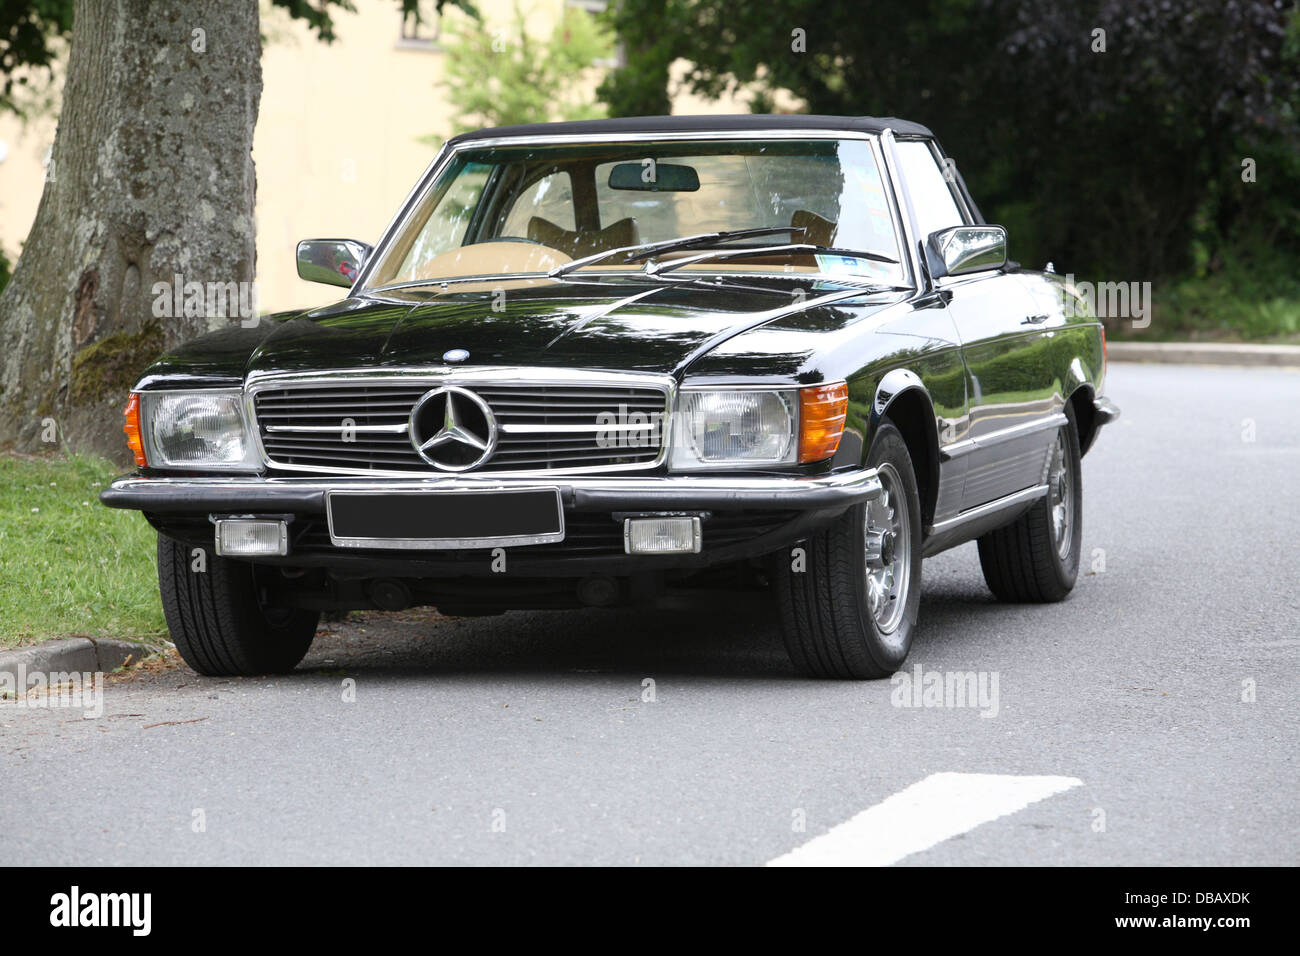 Mercedes SEL coupe black - Stock Image